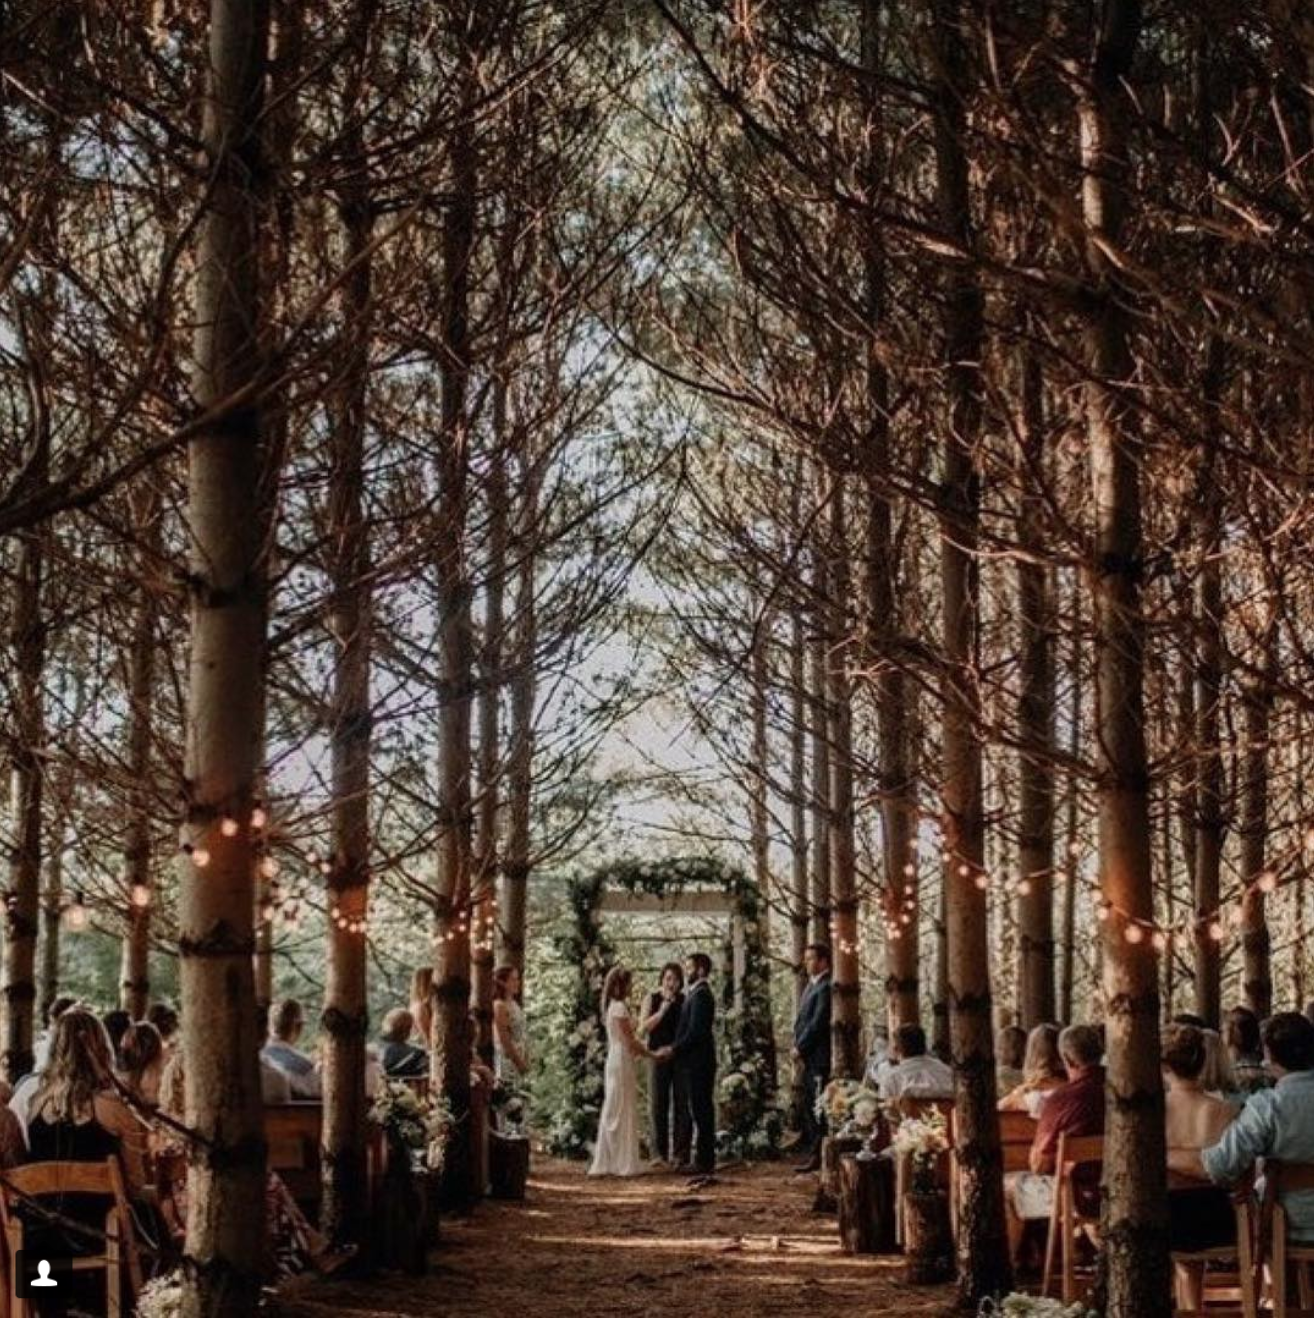 Outdoor Wedding Spots Near Me: Orchard House Granville